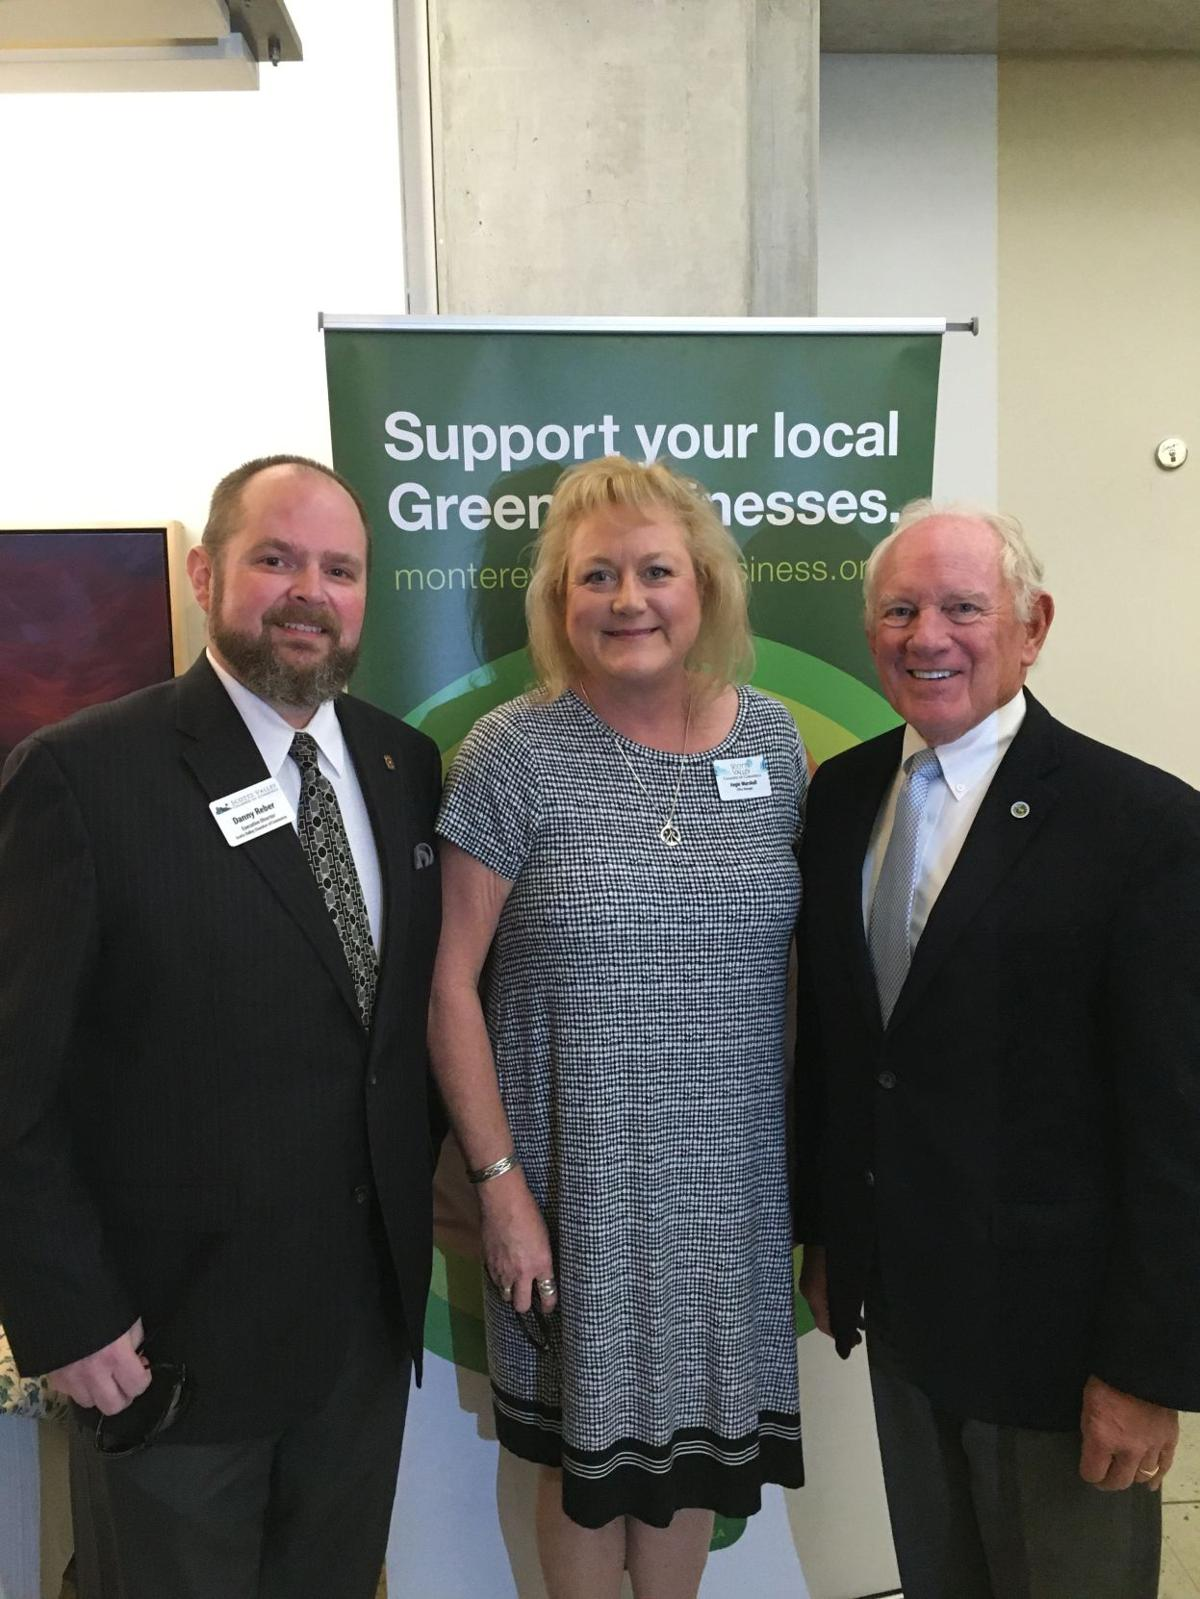 Danny Reber and Angela Marshall of the Scotts Valley Chamber of Commerce alongside District Supervisor, Bruce McPherson.